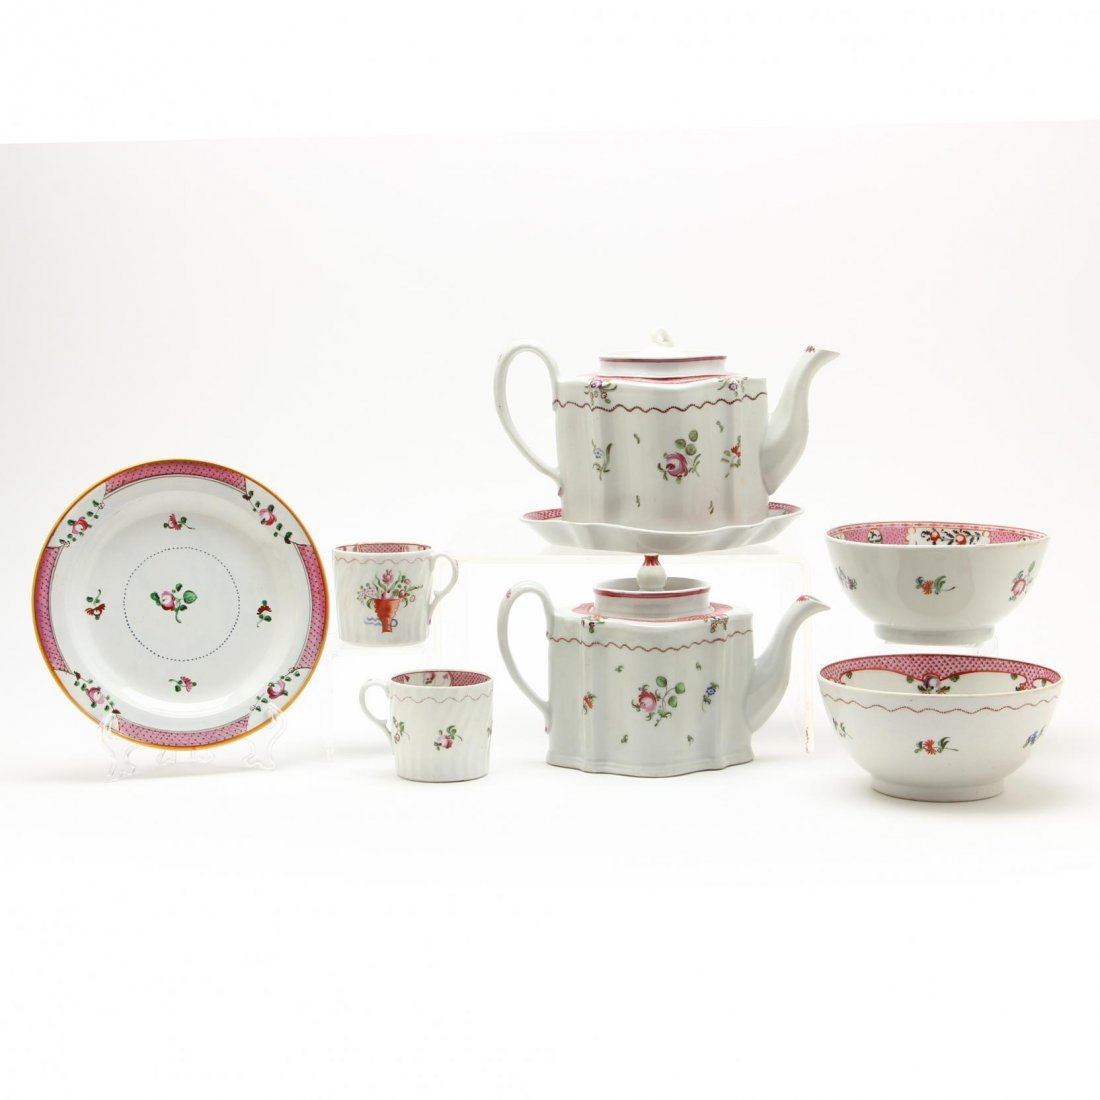 Group of Early New Hall Porcelain